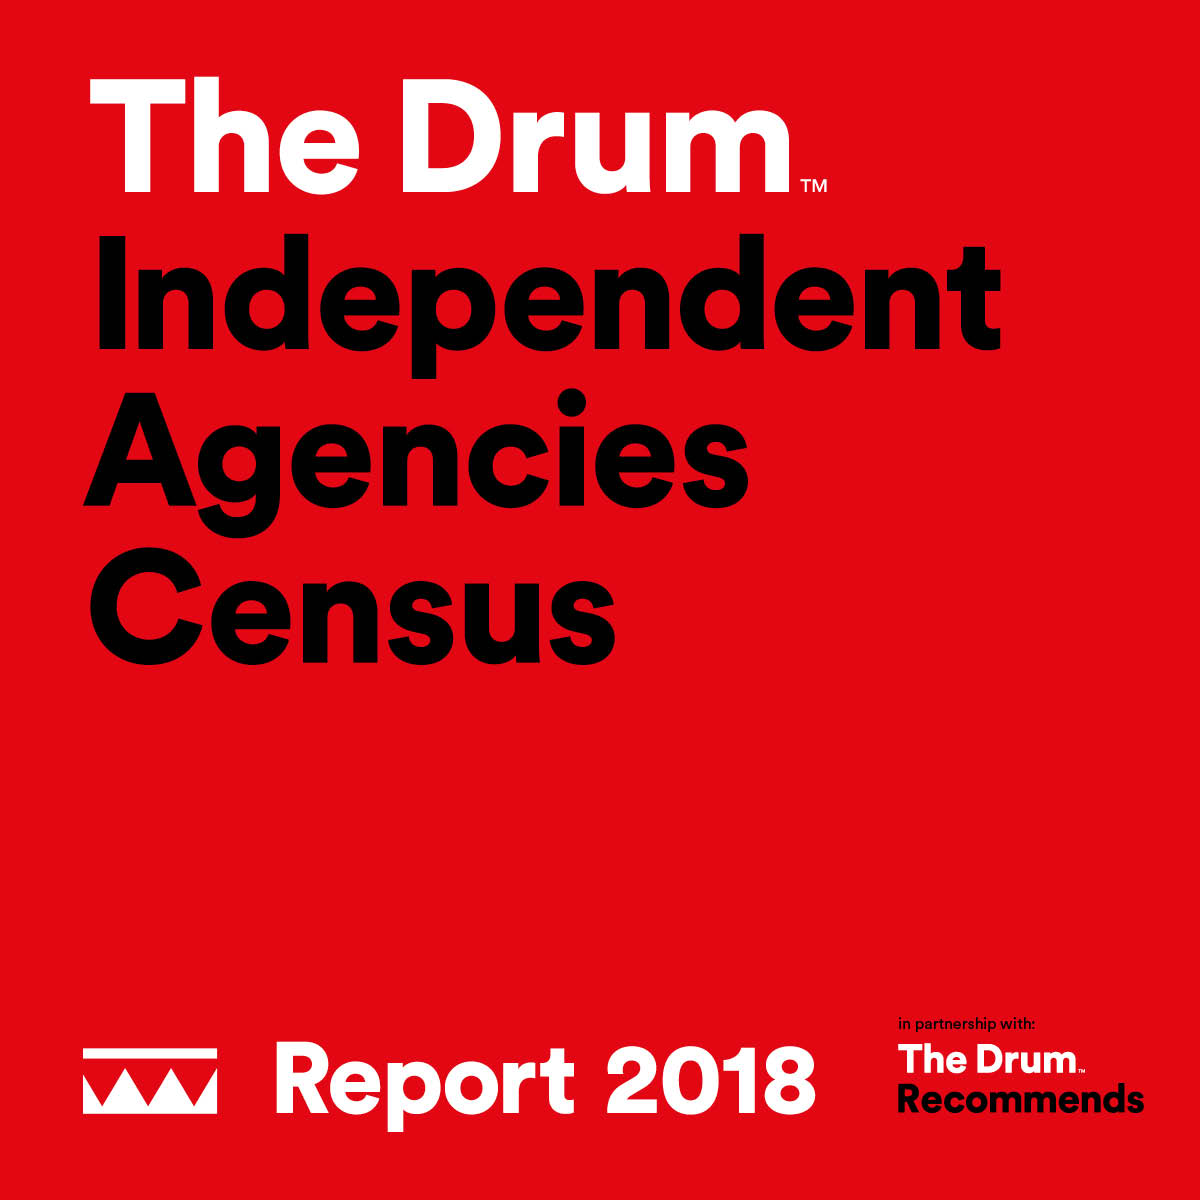 The Drum Top 100 Independent Agencies 2018 | Lists | The Drum